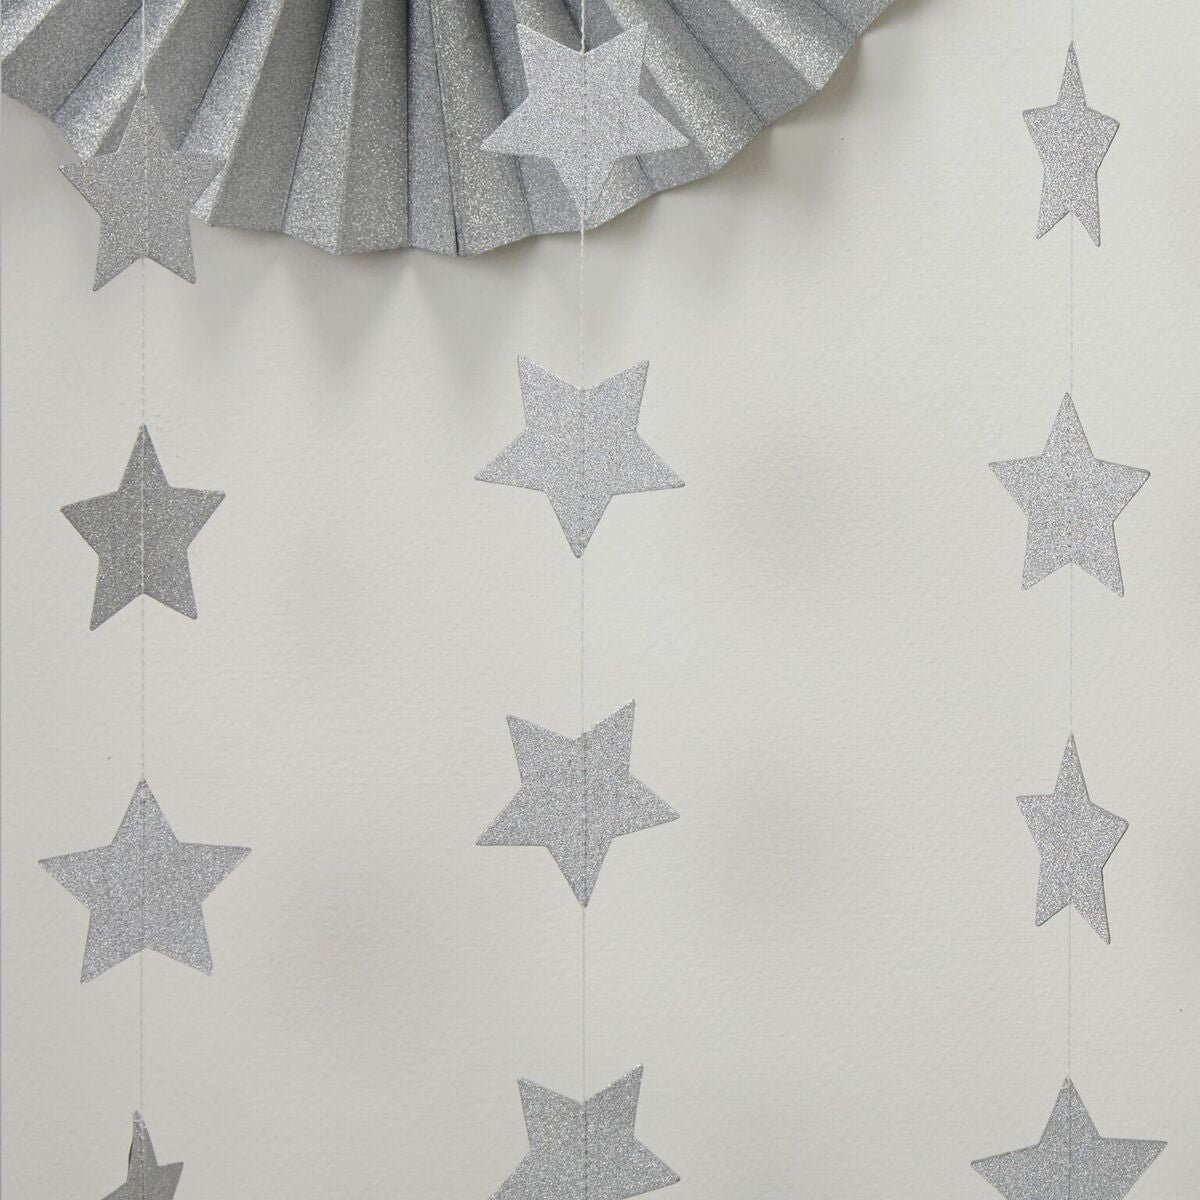 Silver Glitter Star Garland - The Sweet Hostess